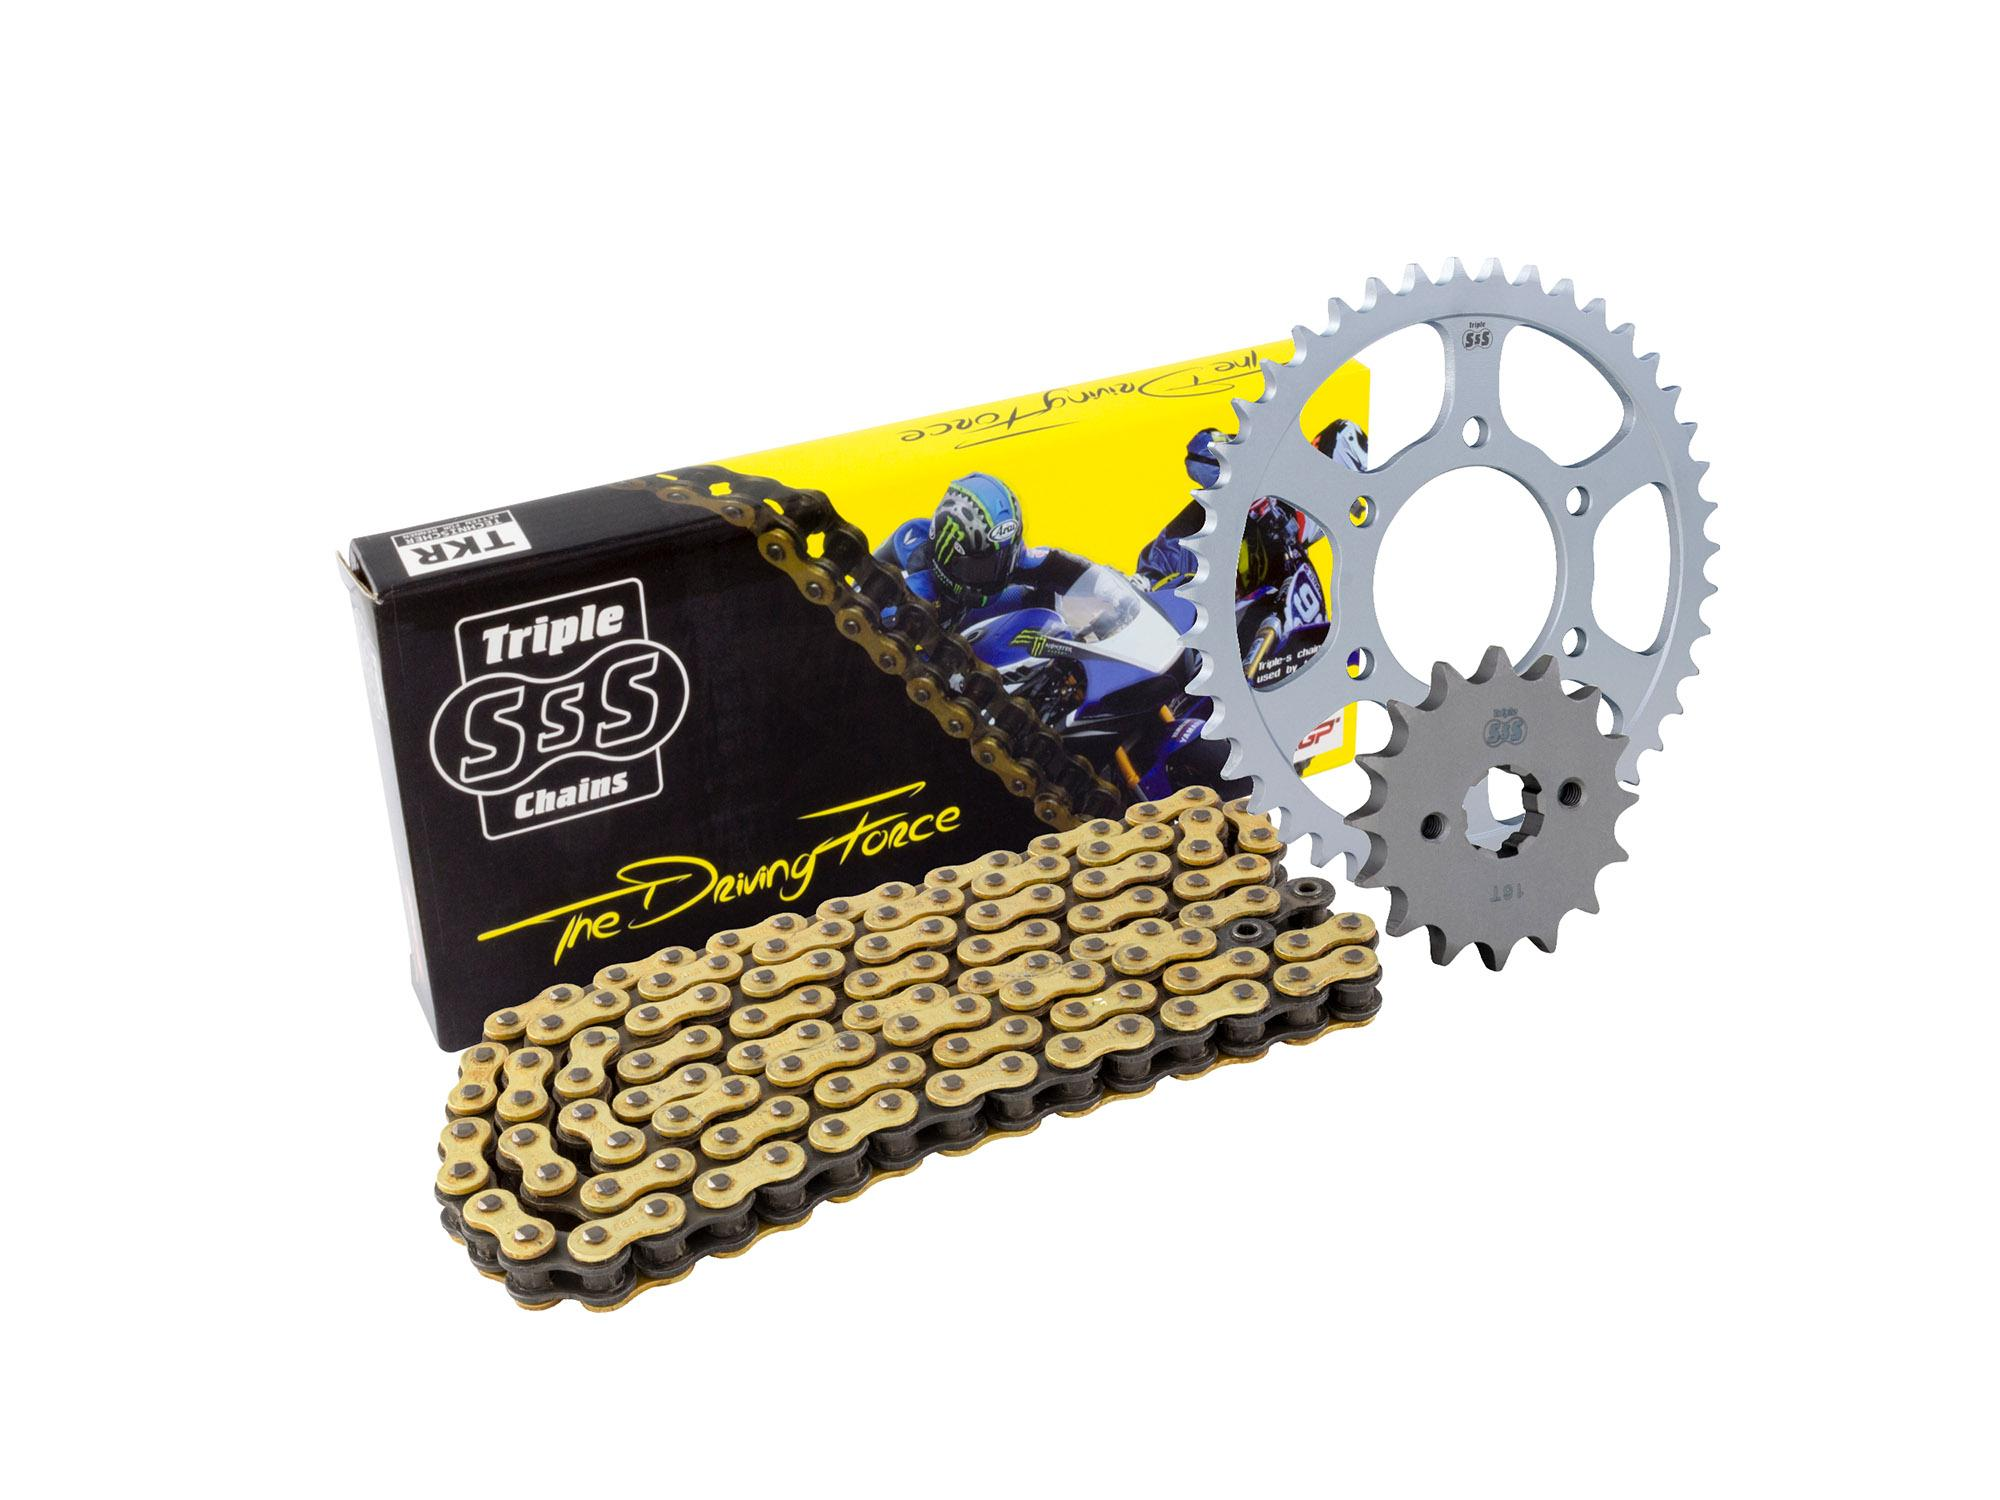 Kawasaki Z1000 SX GBF 11 Chain & Sprocket Kit: 15T Front, 41T Rear, HD O-Ring Gold Chain 525H 112Link